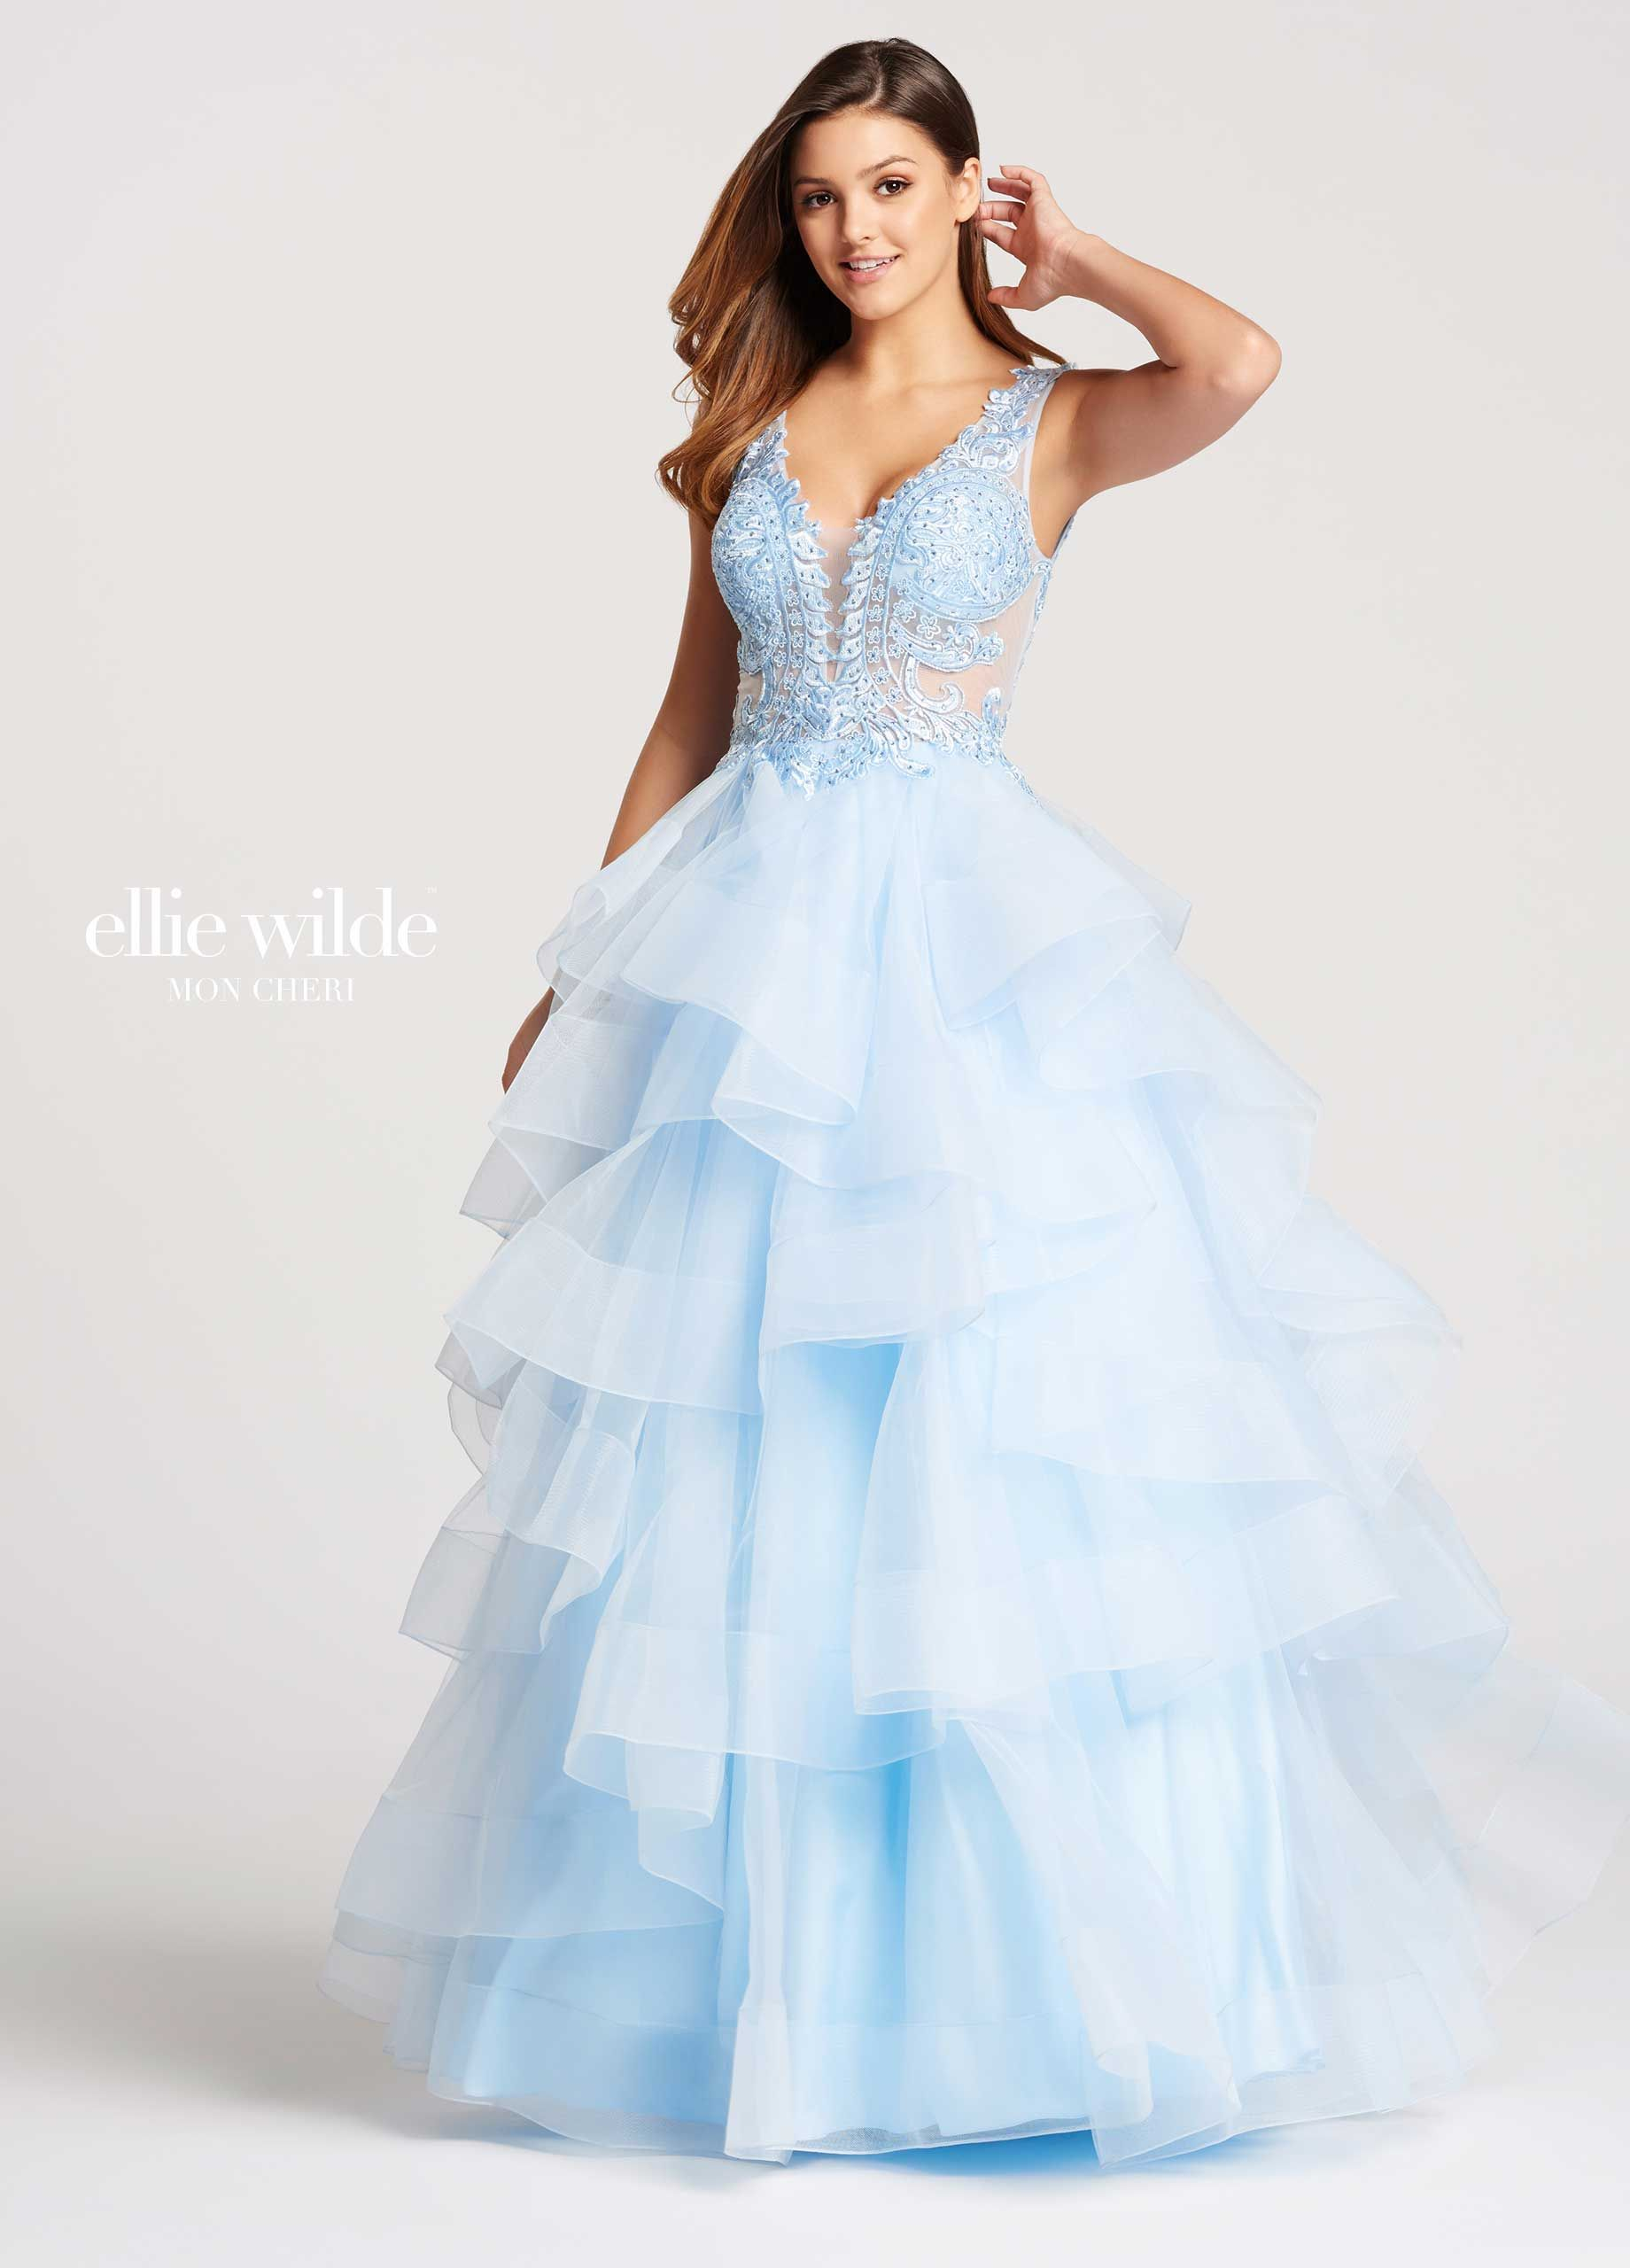 c9d2766f83d7 Ellie Wilde EW117081 - Sleeveless tulle ball gown with lace and heat-set  stone bodice, plunging V-neckline with illusion modesty panel, low scooped  back, ...